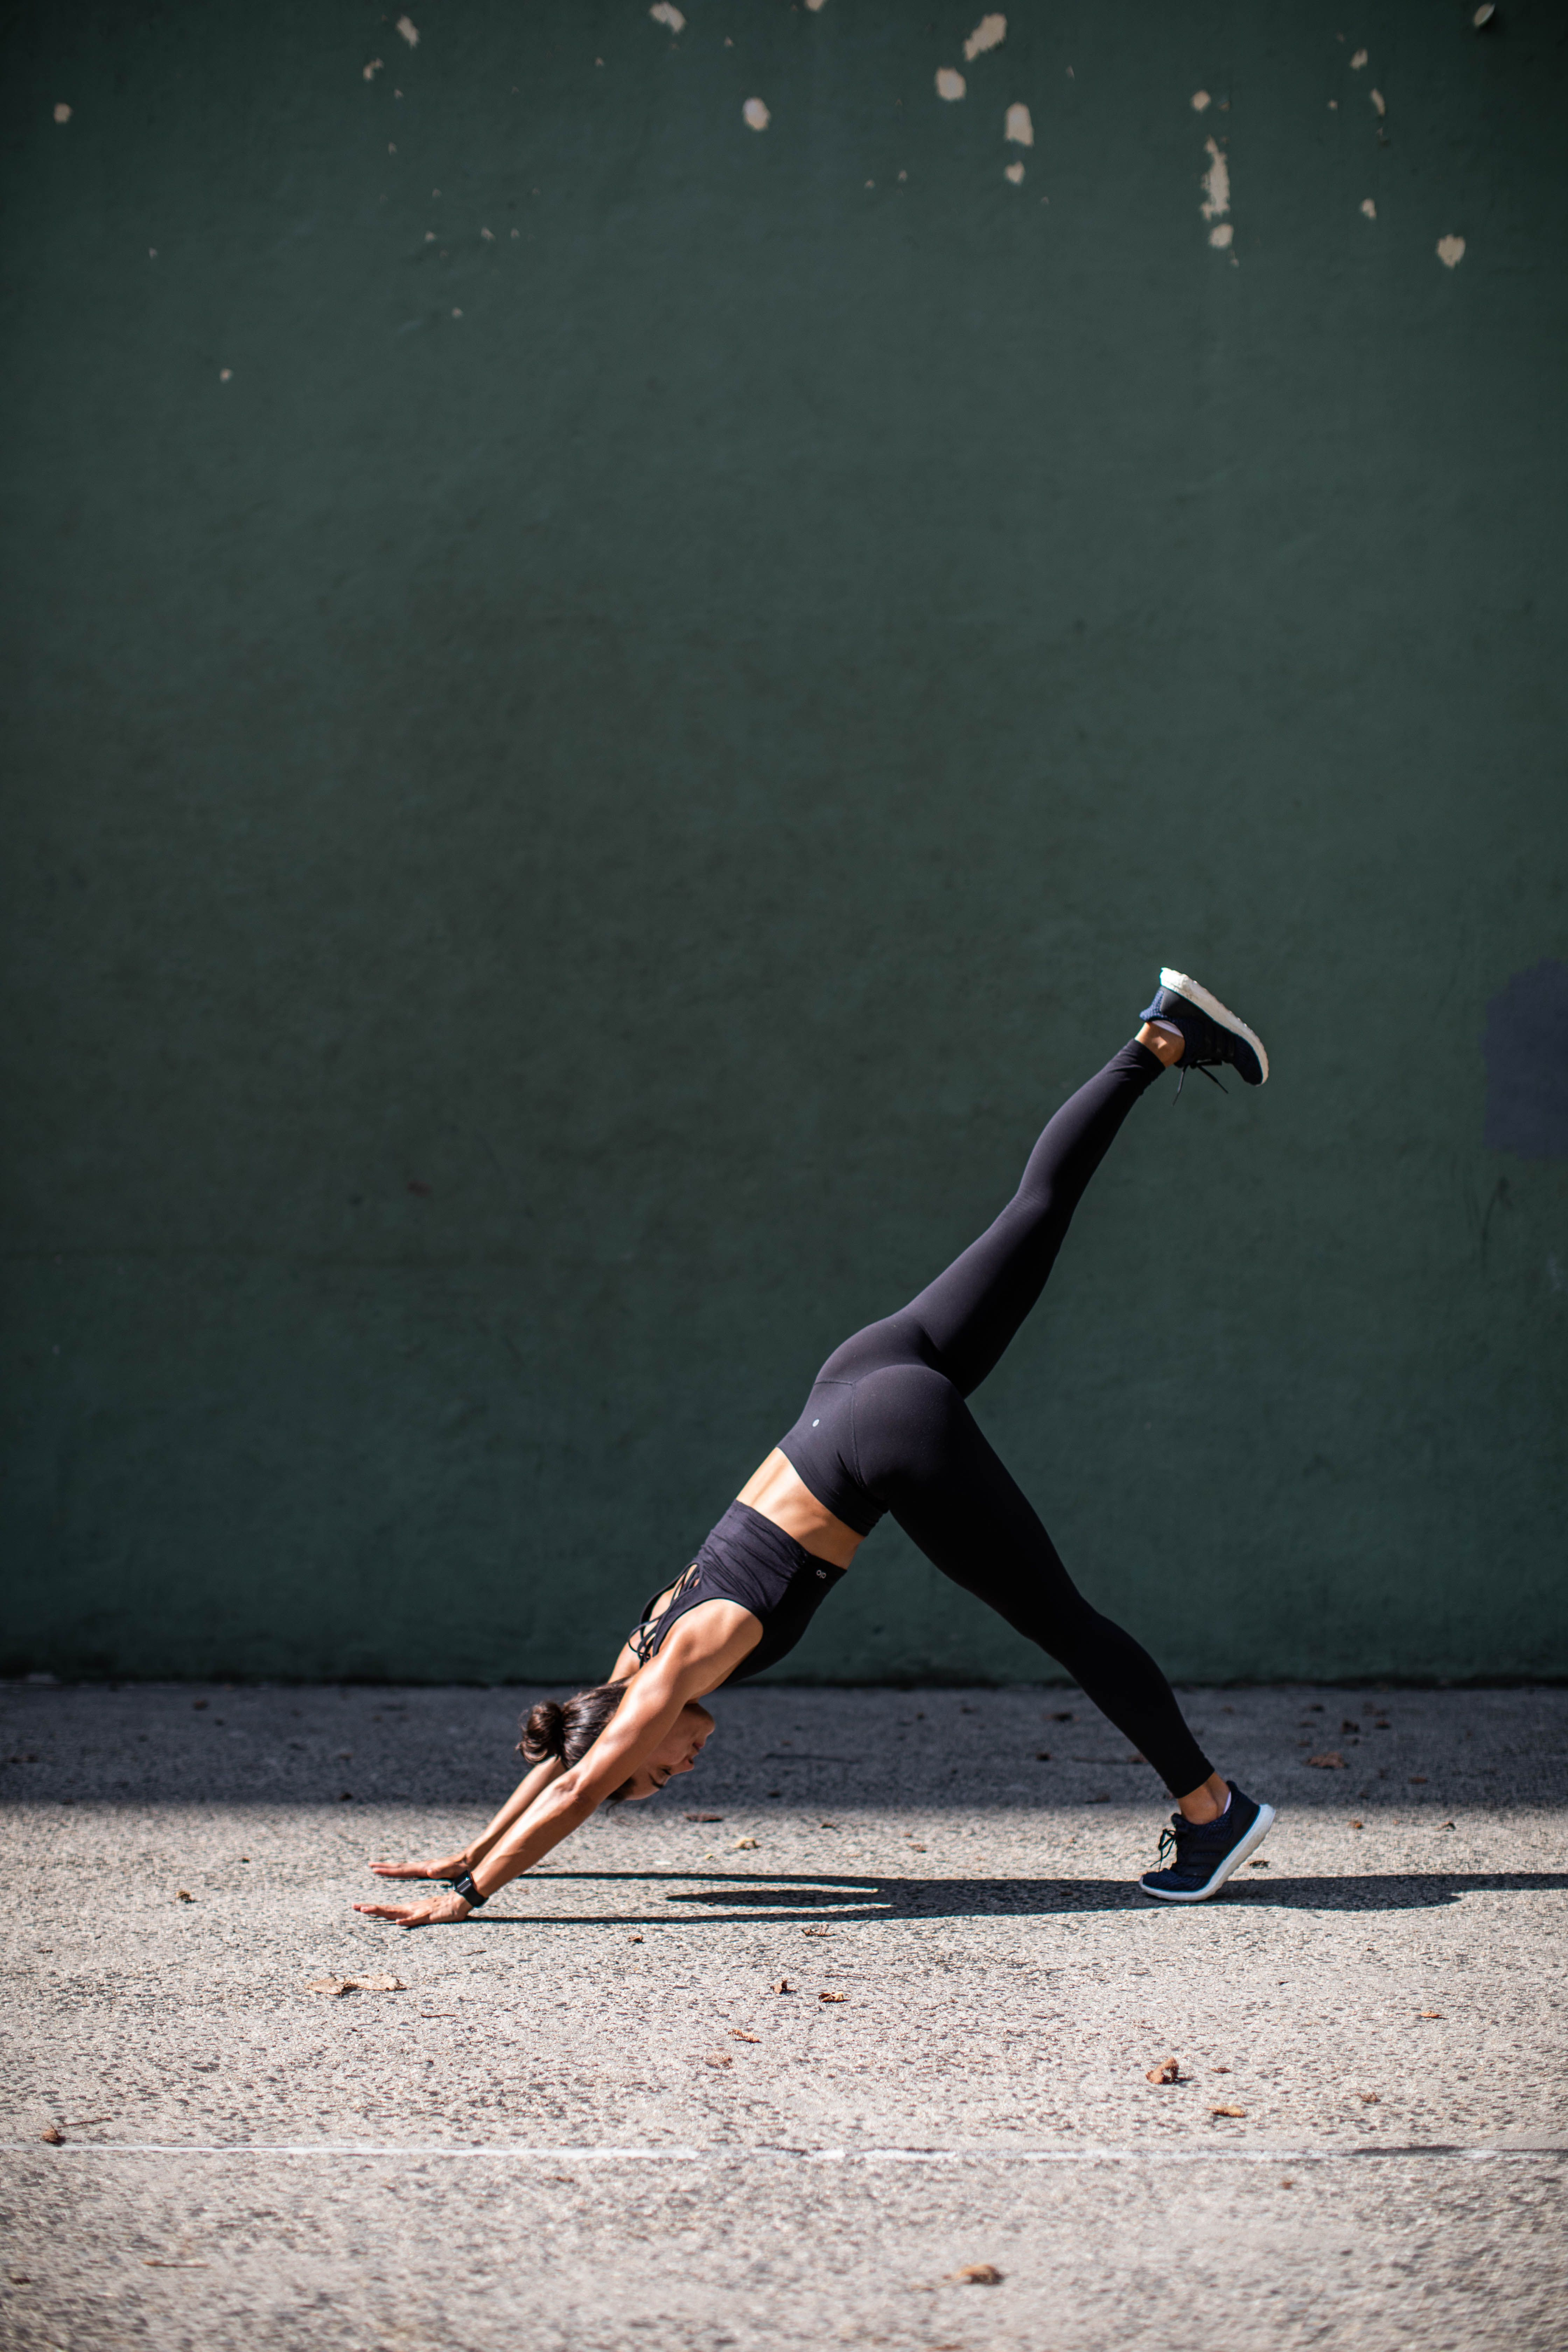 The Best Stretch Series to Do After Sitting on Your Butt All Day